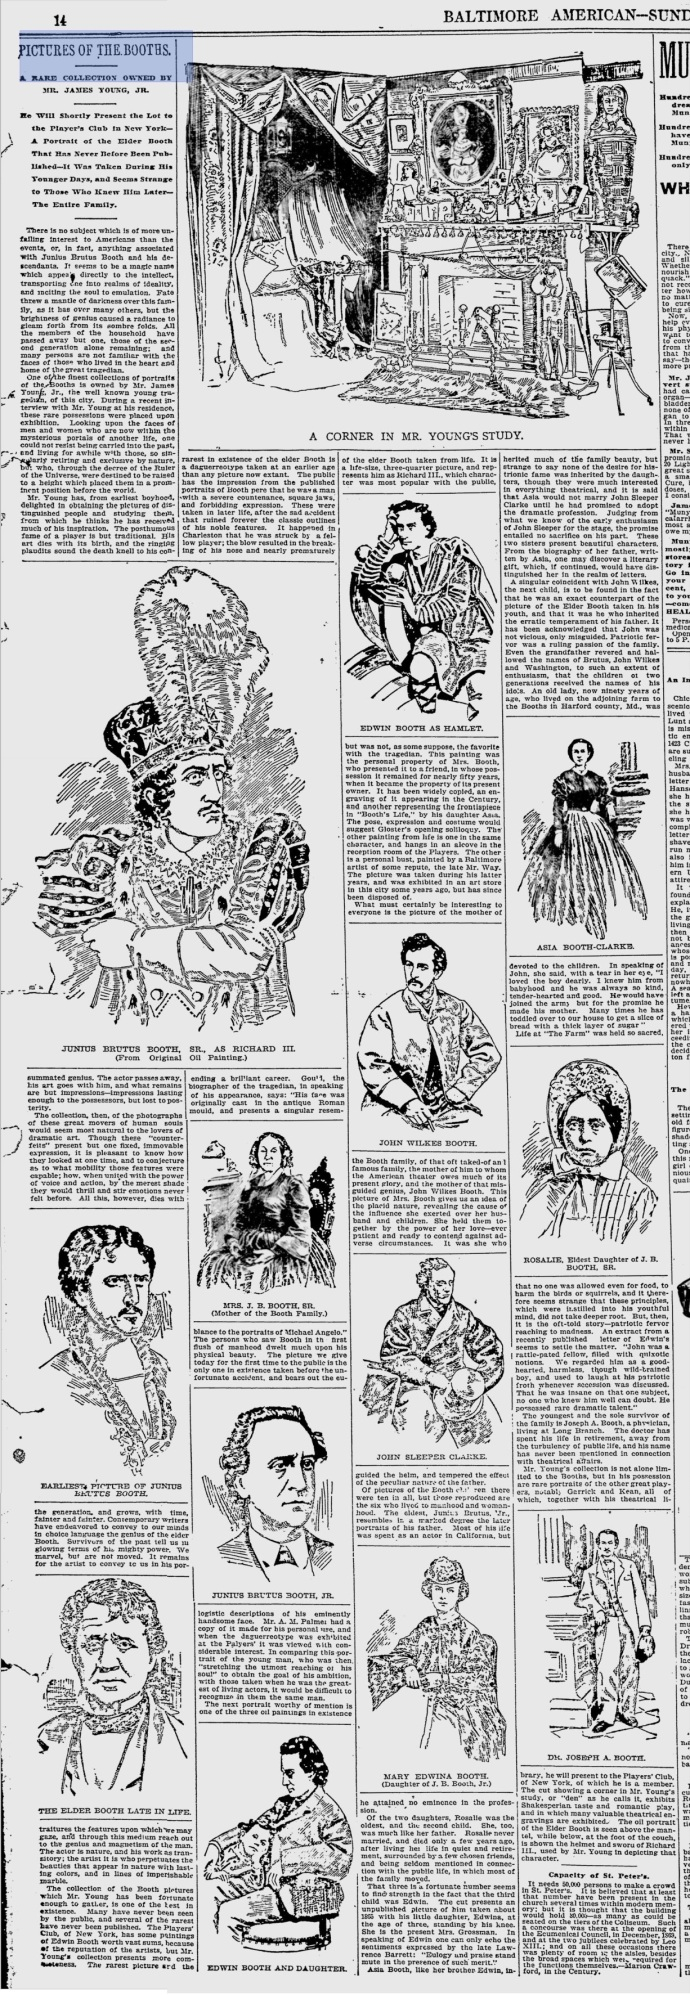 Pictures of the Booths - Baltimore American 7-12-1896 Click to enlarge